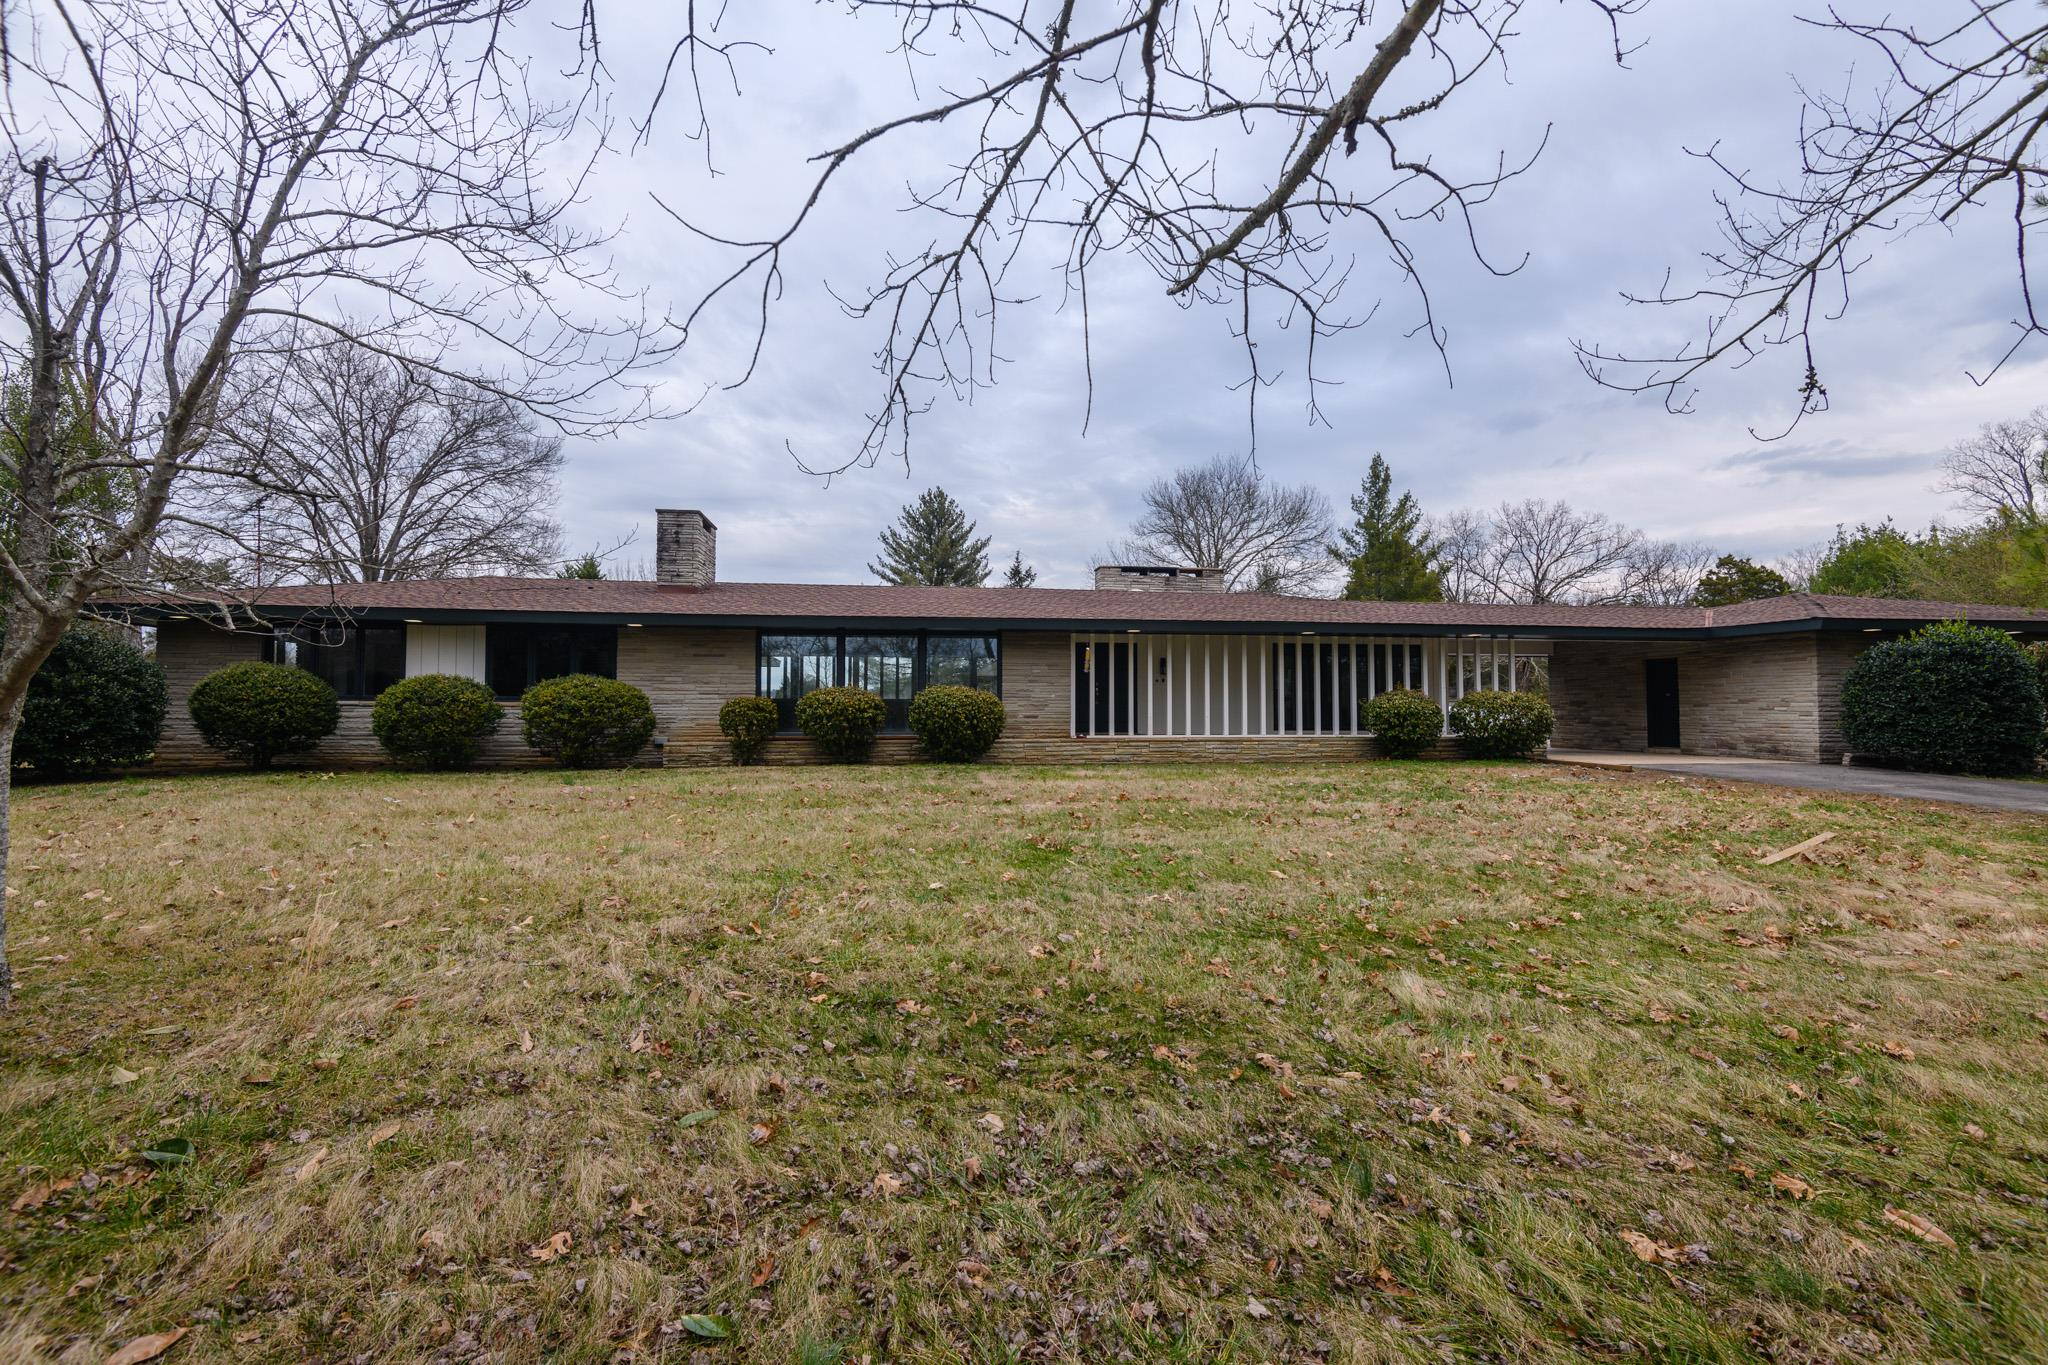 2219 Highway 41A South, Shelbyville, TN 37160 - Shelbyville, TN real estate listing